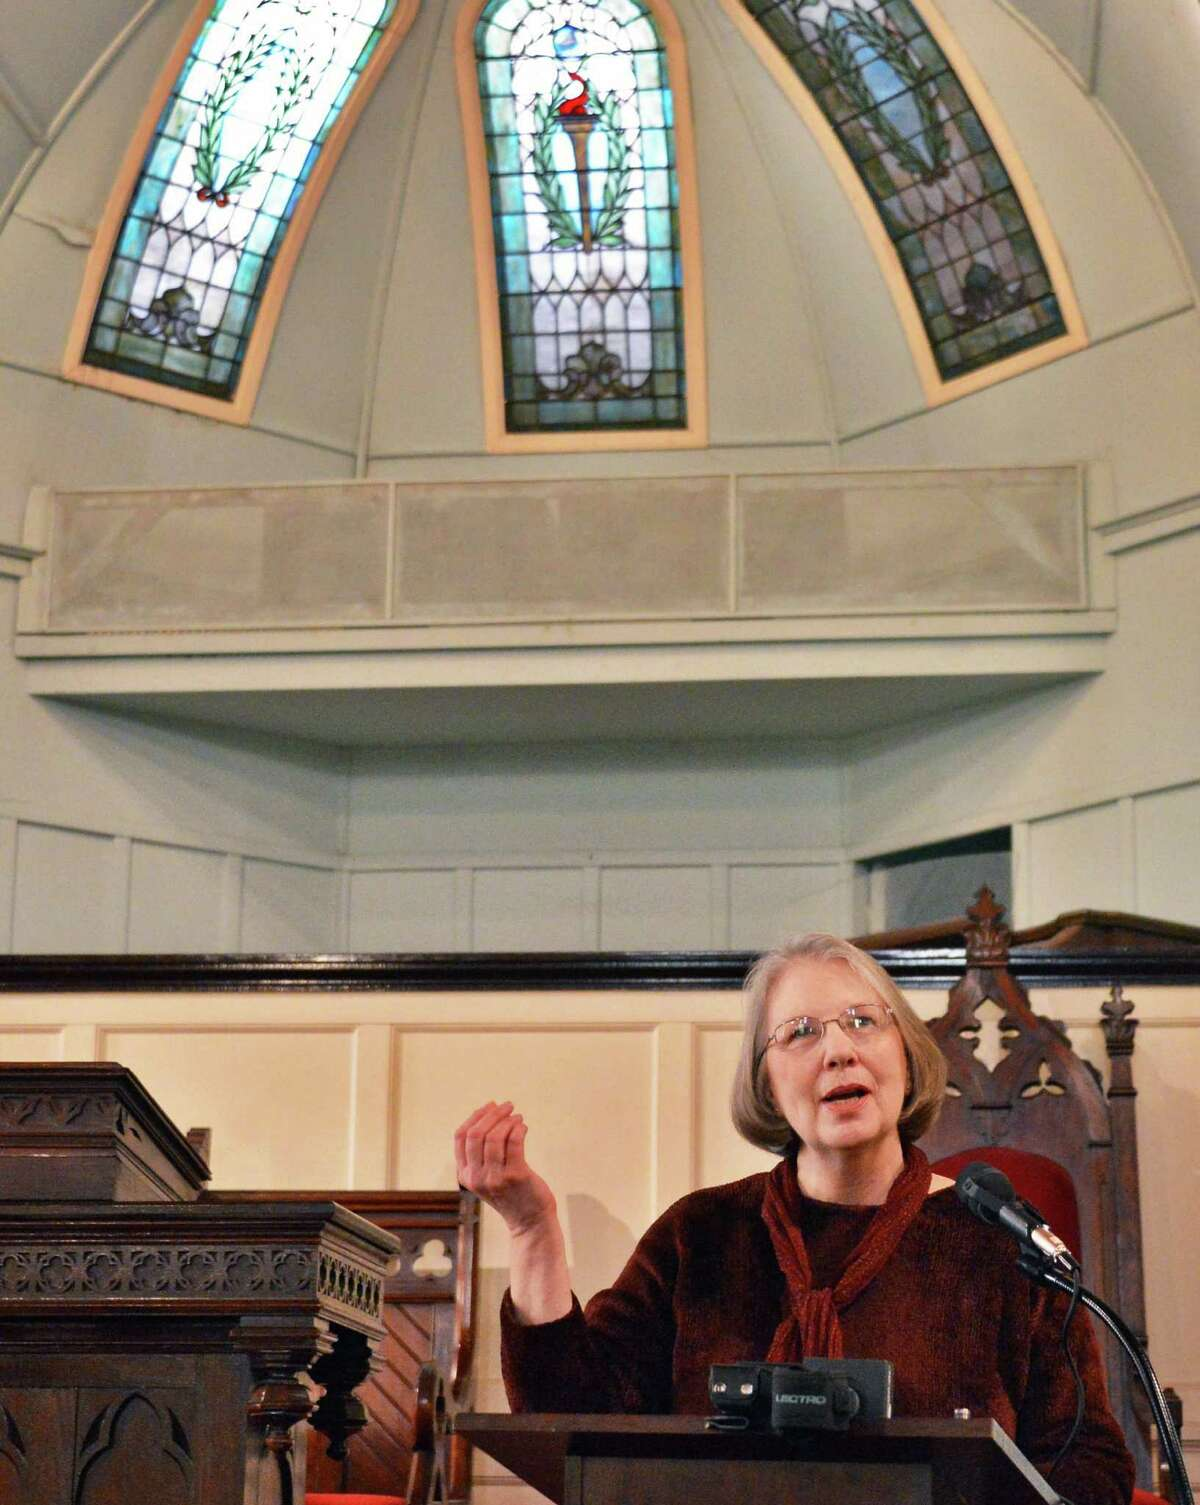 Linda O?Malley, director of the Oakwood Presbyterian Church & Community Center speaks during a ceremony to recognize the listing of the church on the National Register of Historic Places, at the church in Troy Tuesday Jan. 29, 2013. (John Carl D'Annibale / Times Union)